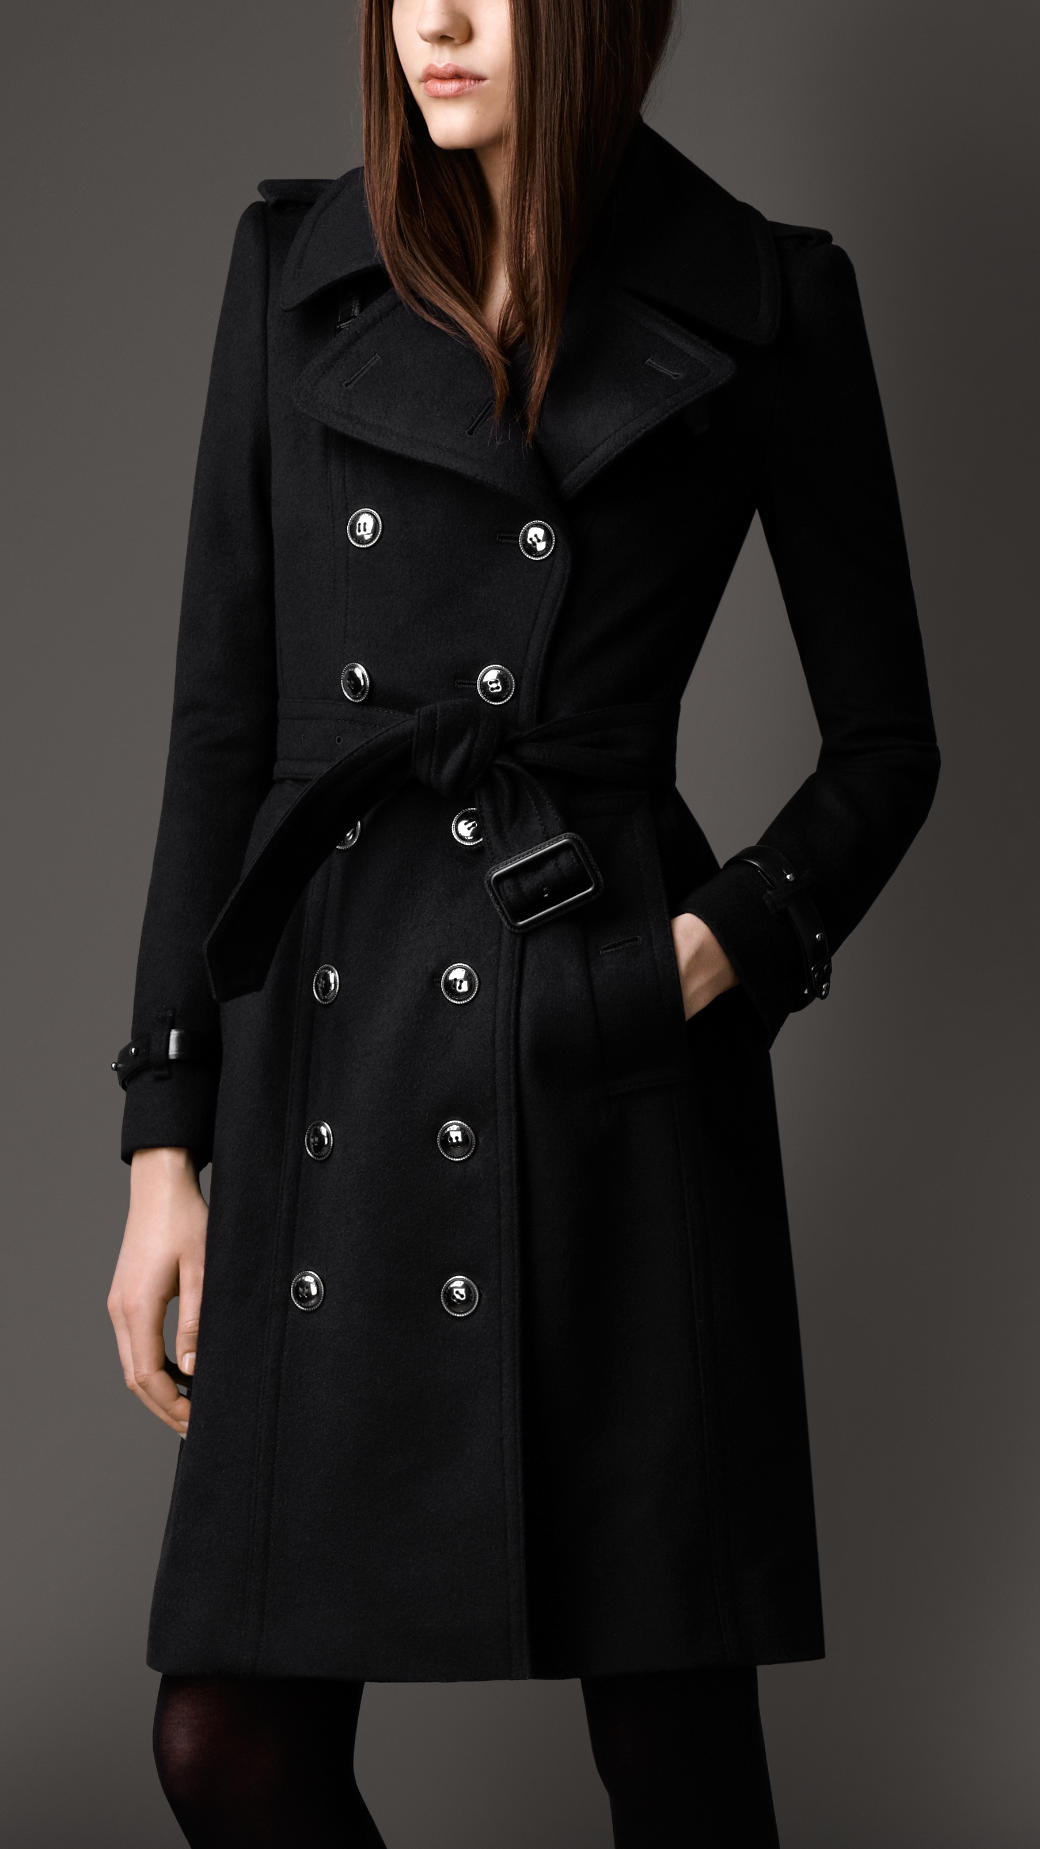 Burberry Long Wool Cashmere Regimental Trench Coat in Black | Lyst